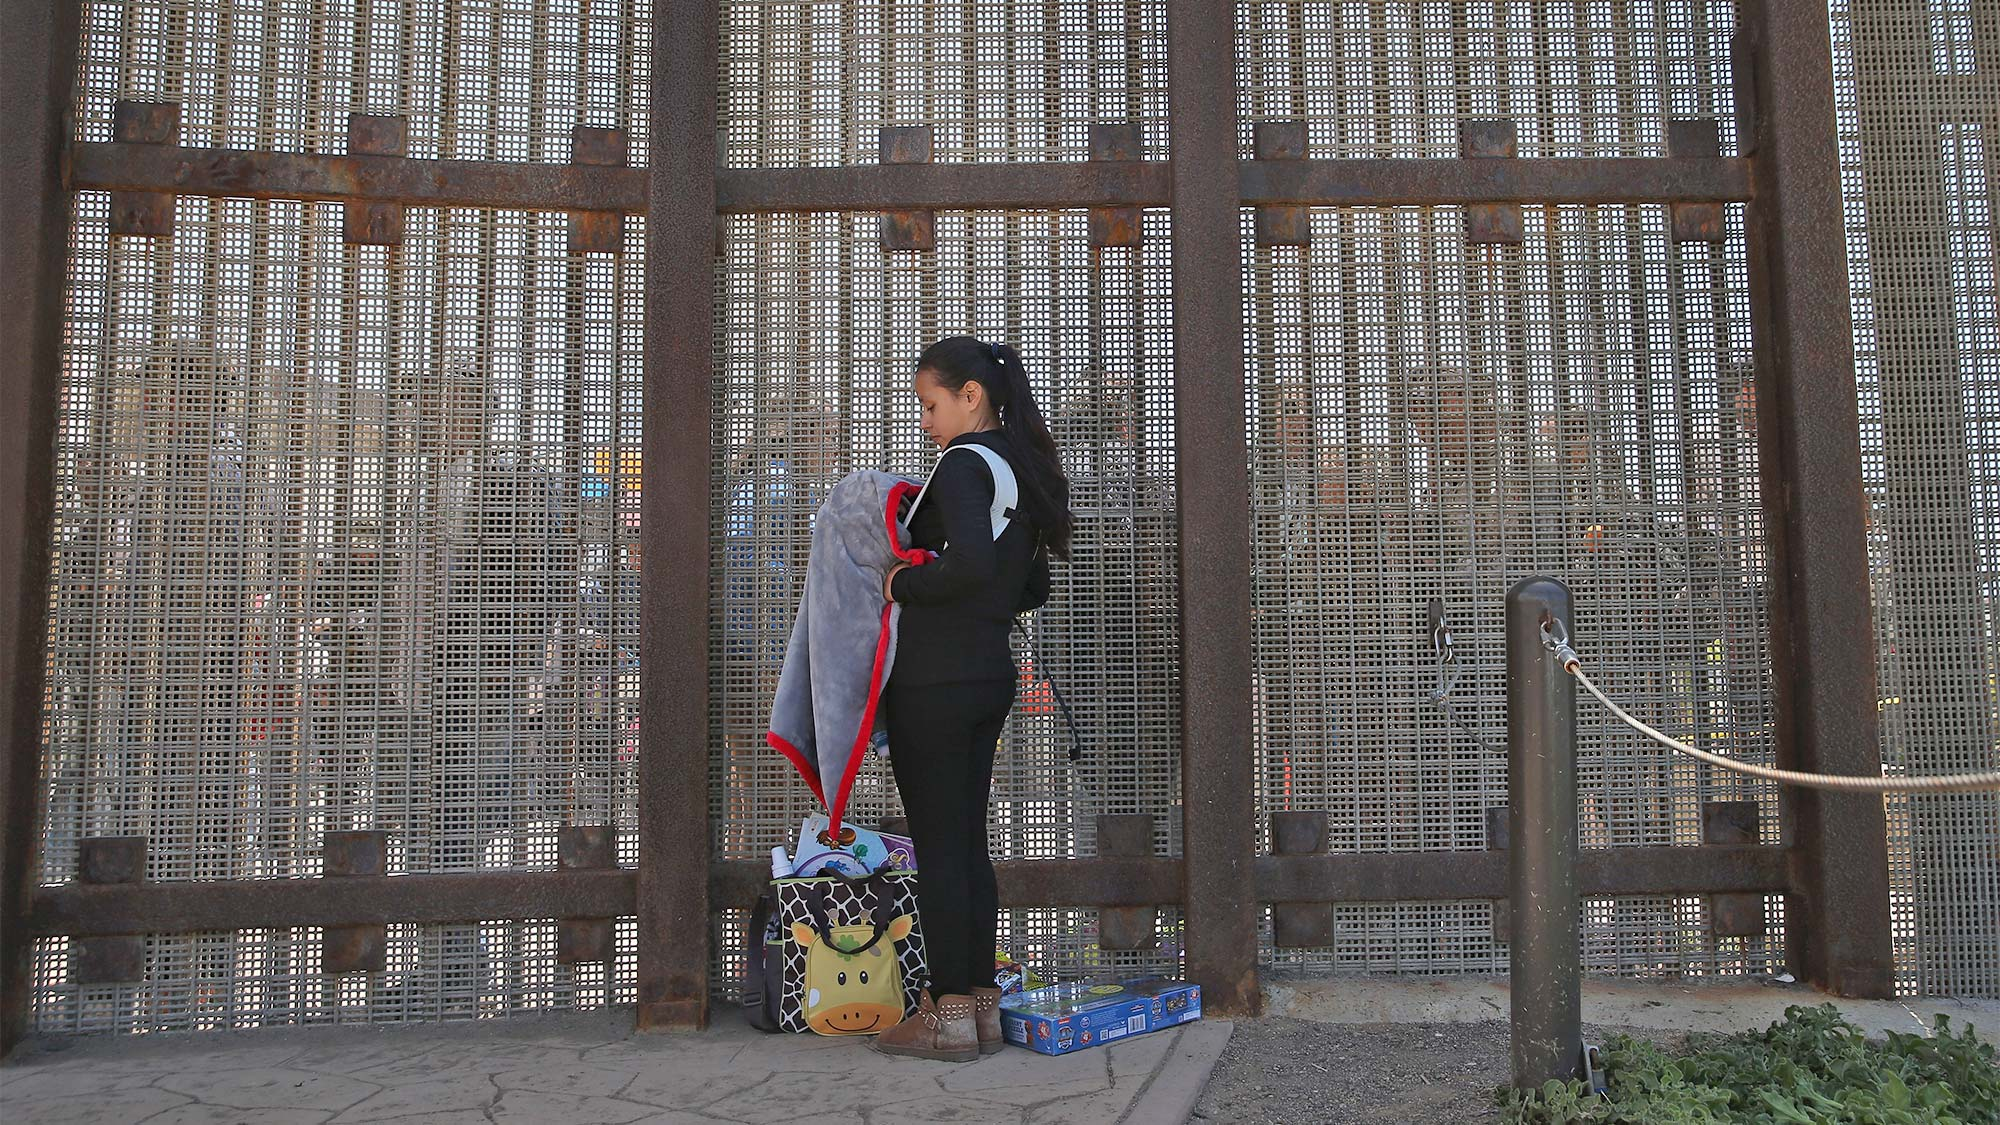 Karen Herrera, 23, holds her baby Ivan, 3 months, while speaking with family members through the U.S.-Mexico border fence.